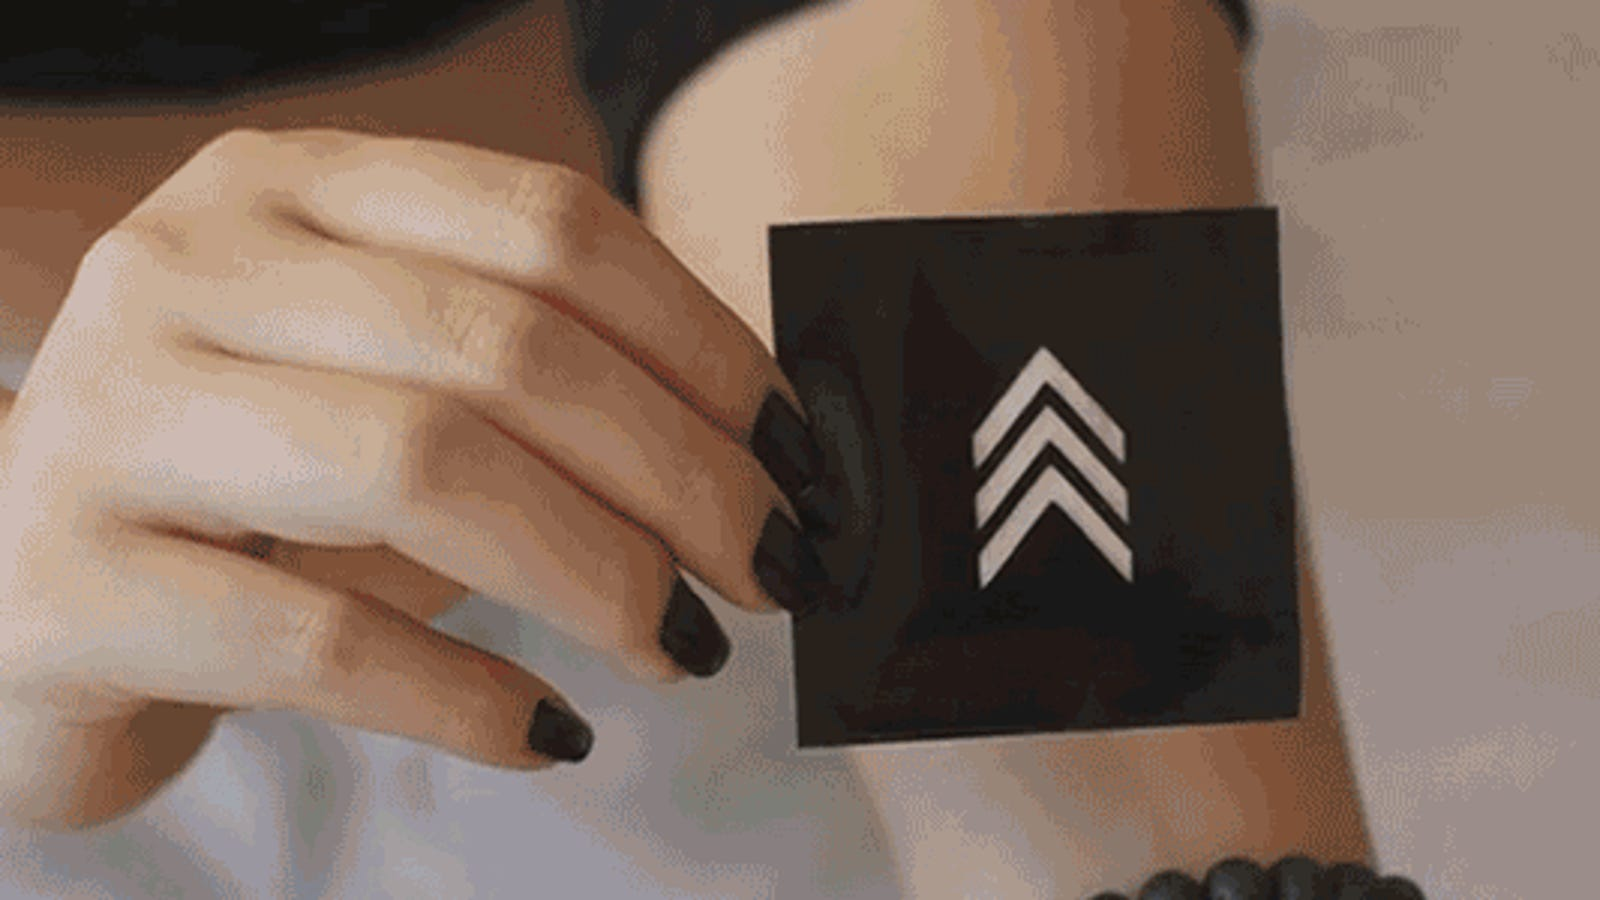 Temporary Tattoos That Last A Long Time: A New Type Of Temporary Tattoo Magically Lasts For Two